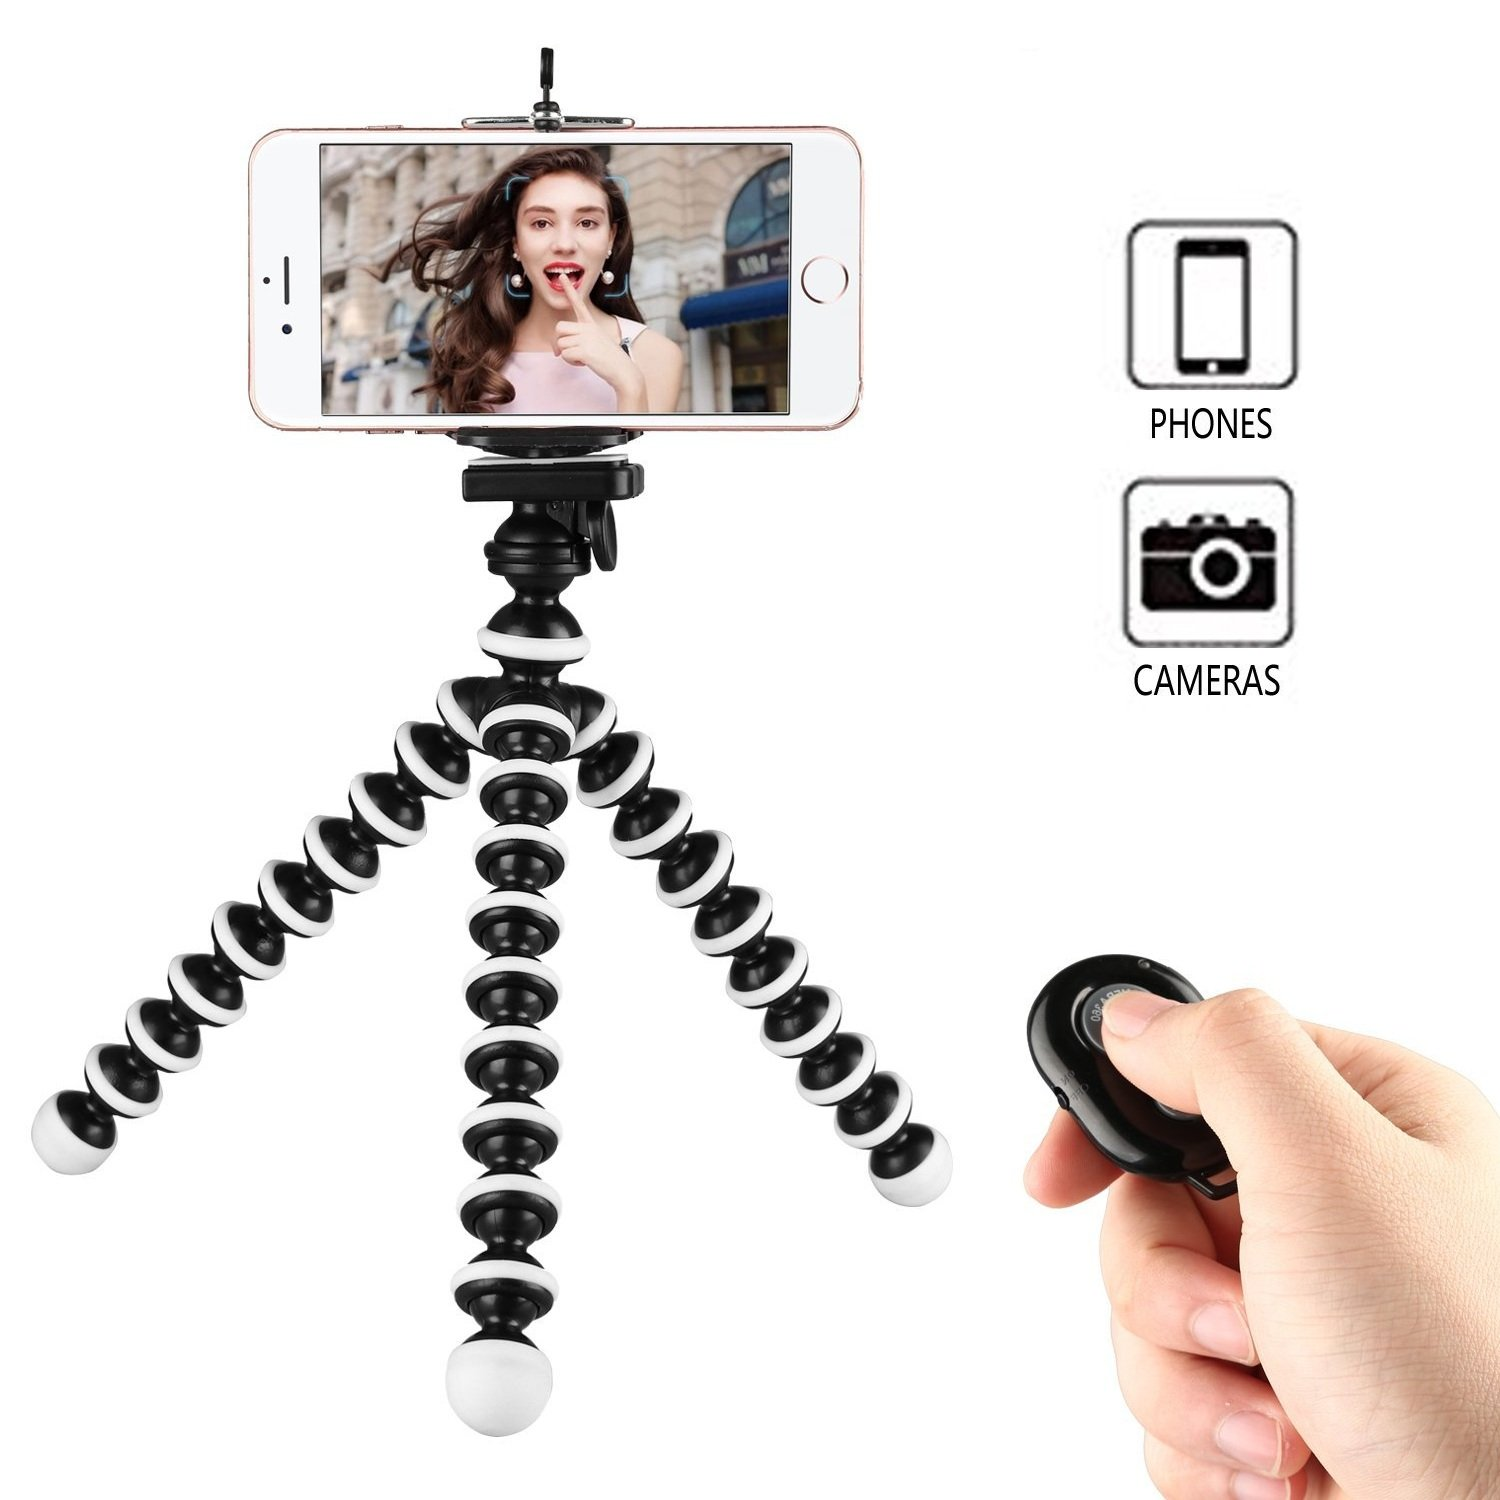 Phone Tripod, WAAO Octopus Style Portable and Adjustable Mini Webcam Tripod Stand Holder for iPhone & Android Phone Camera Sports Camera Gopro Logitech Webcam C920 C922 and more